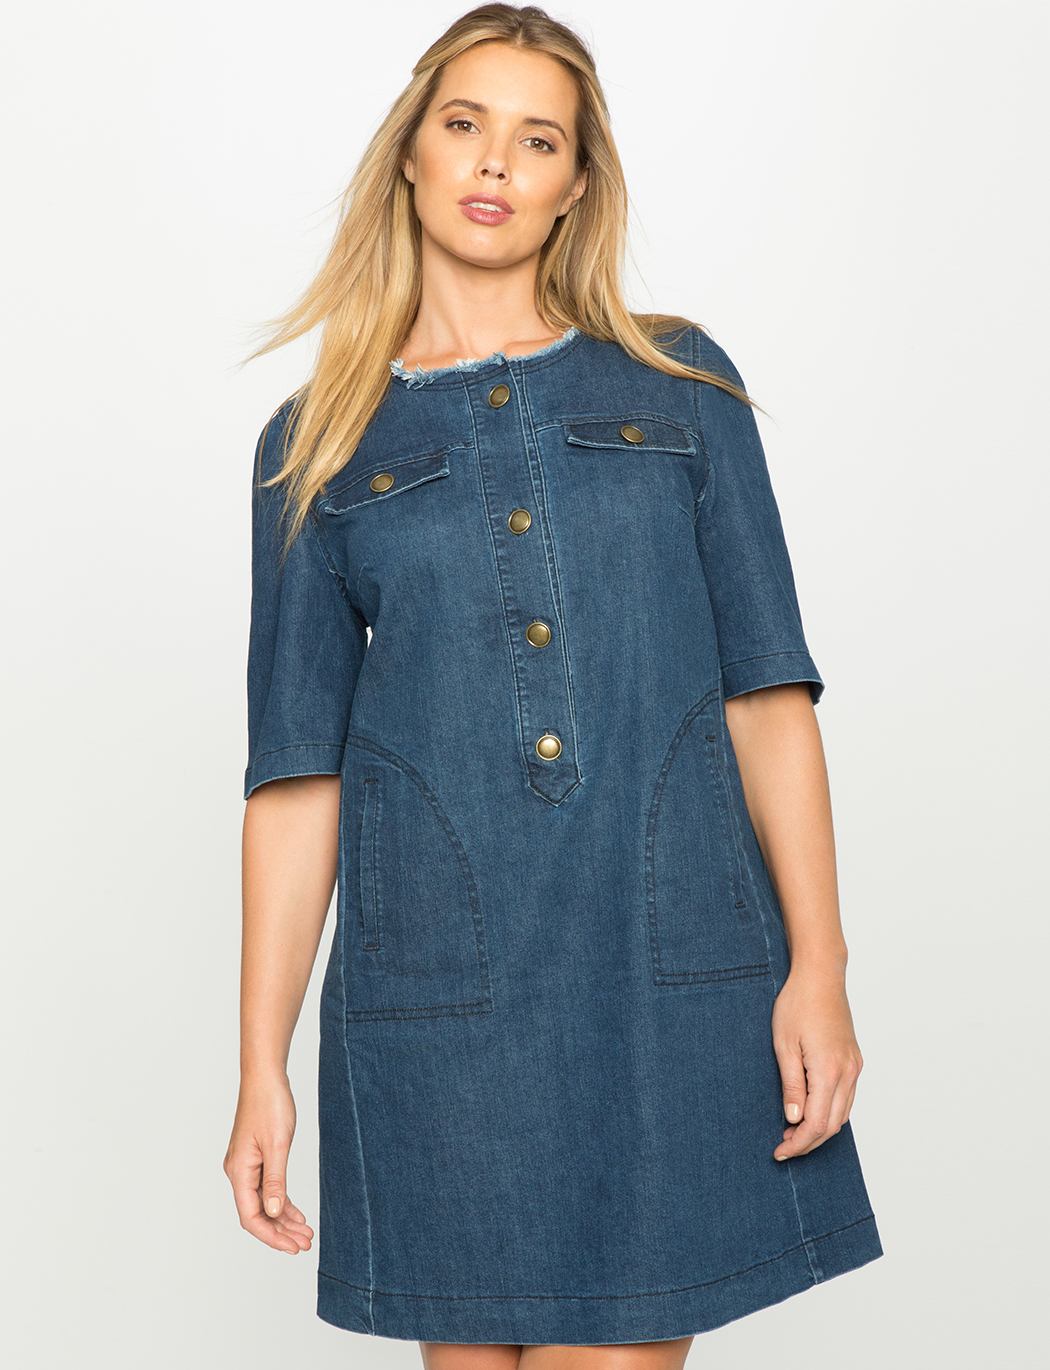 Easy Denim Dress | Women\'s Plus Size Dresses | ELOQUII